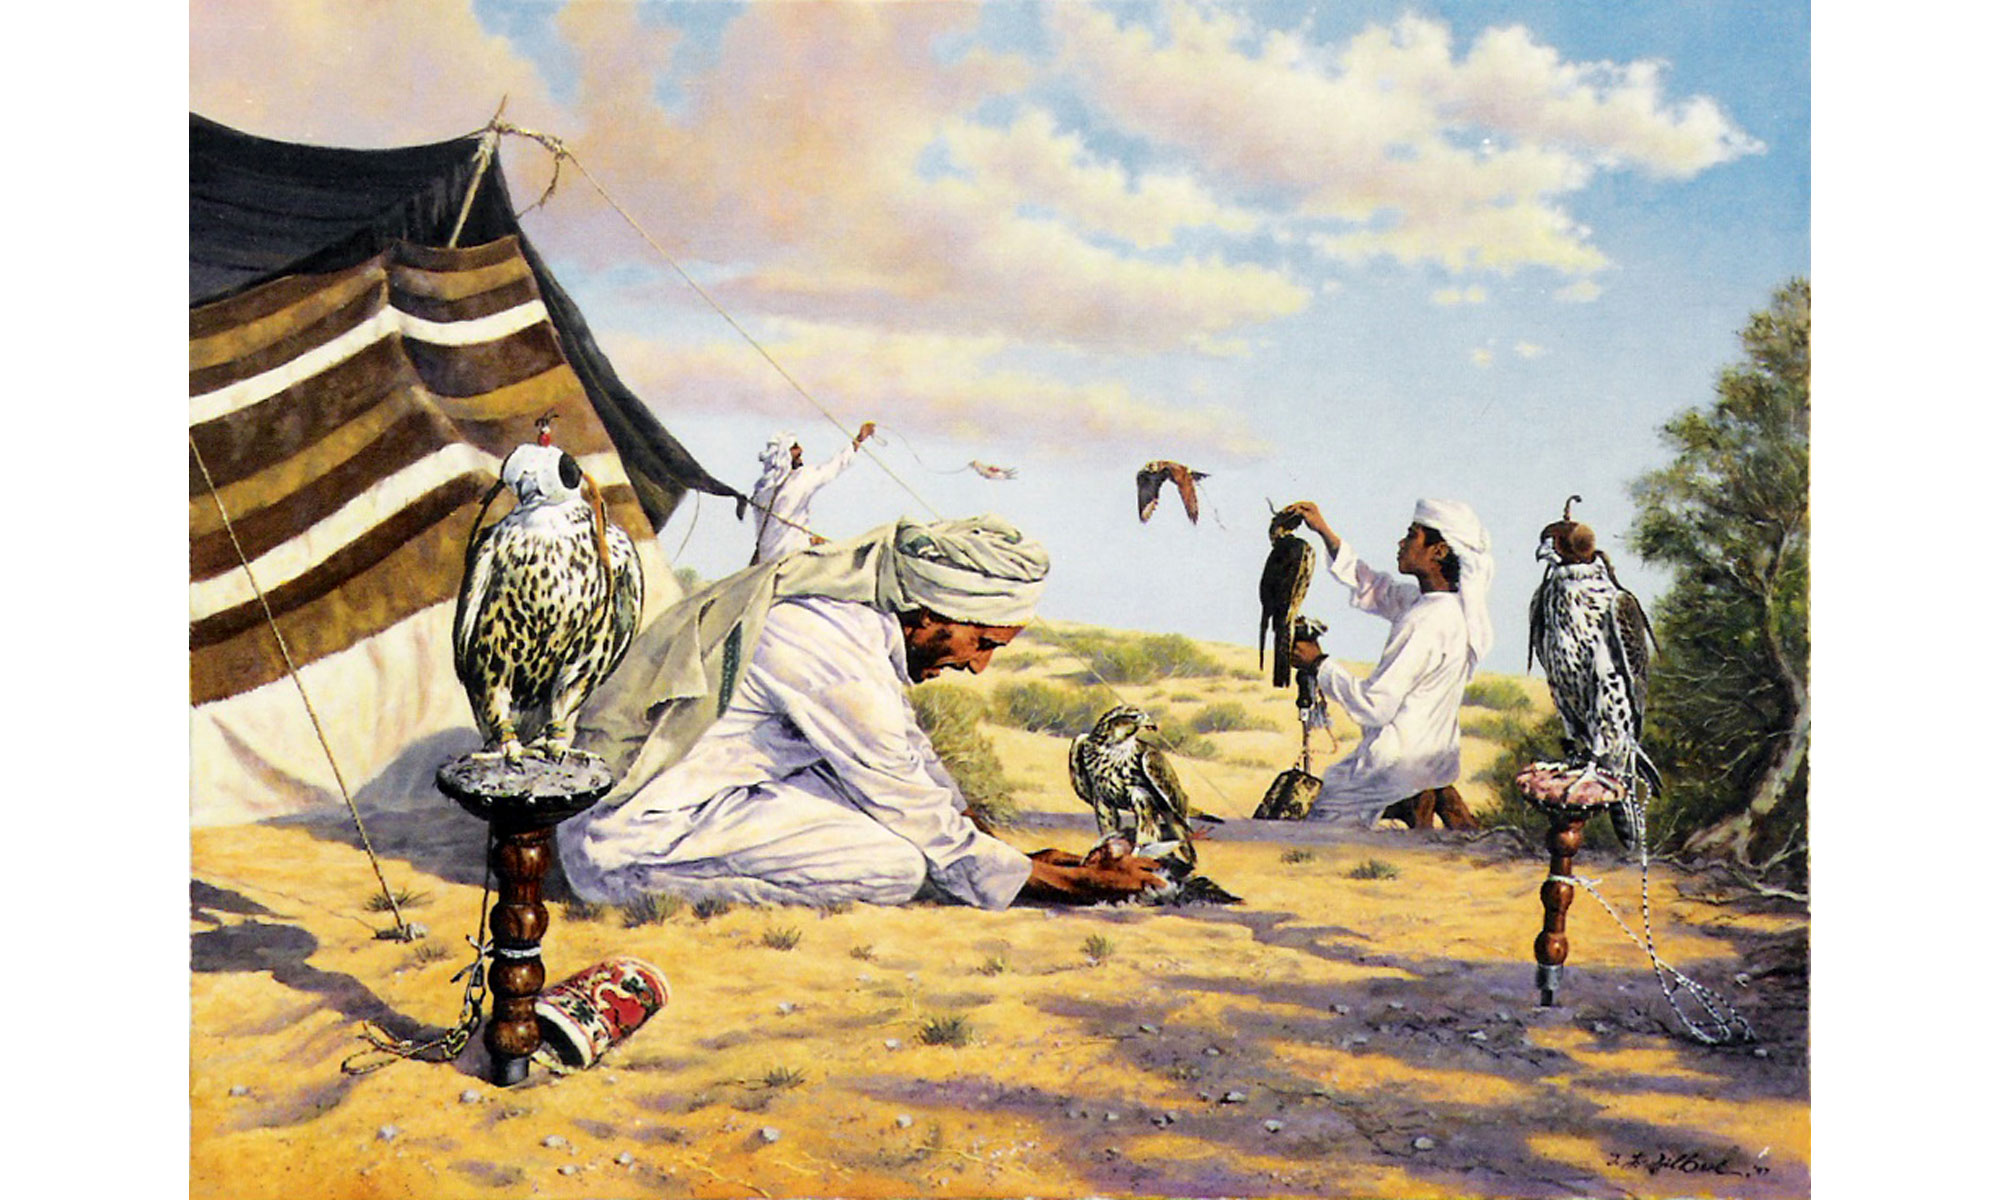 Falconers Painting by Terence J Gilbert Oil on Board